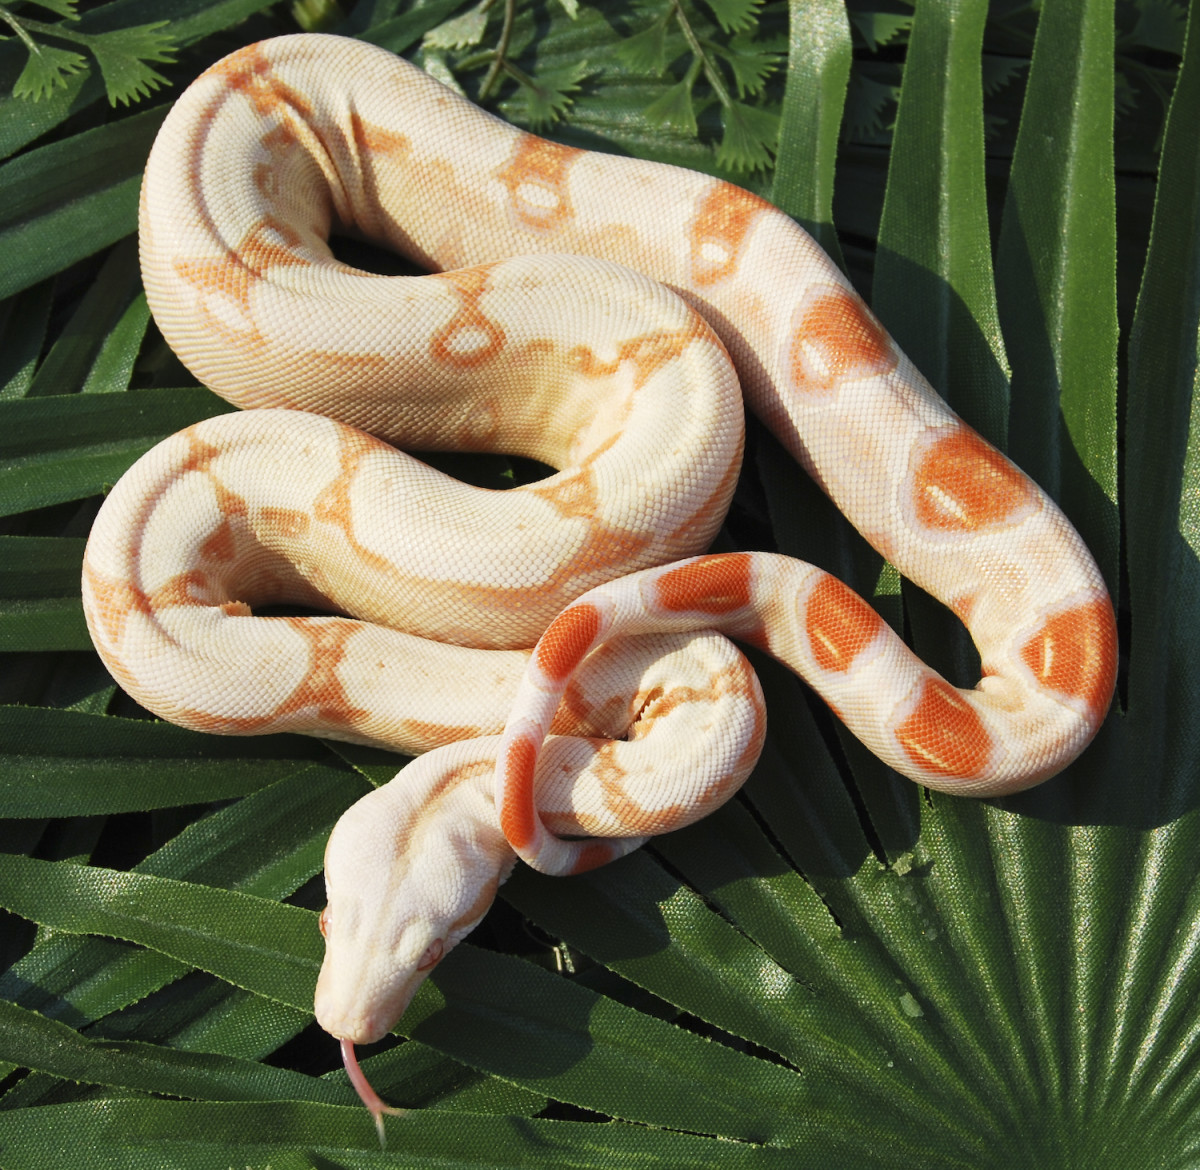 Albino Red Tail Boa Constrictor